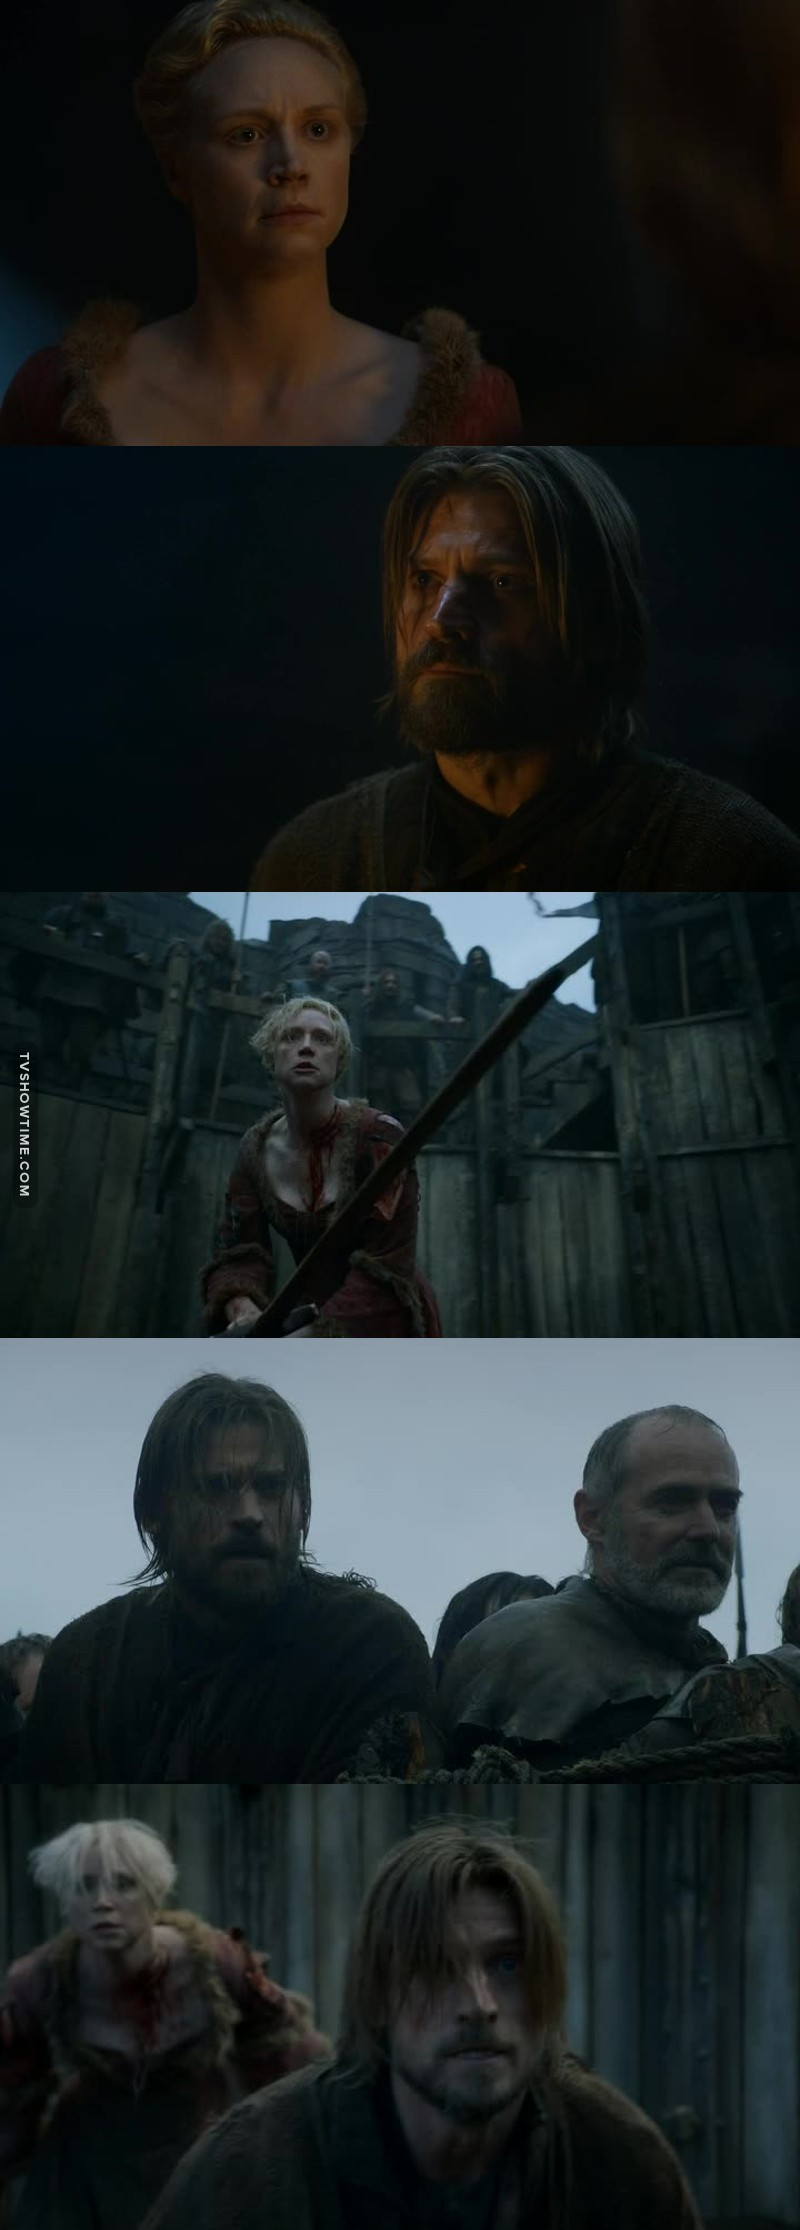 I used to hate Jaime but now he's starting to become one of my favorites. Jaime and Brienne are amazing together